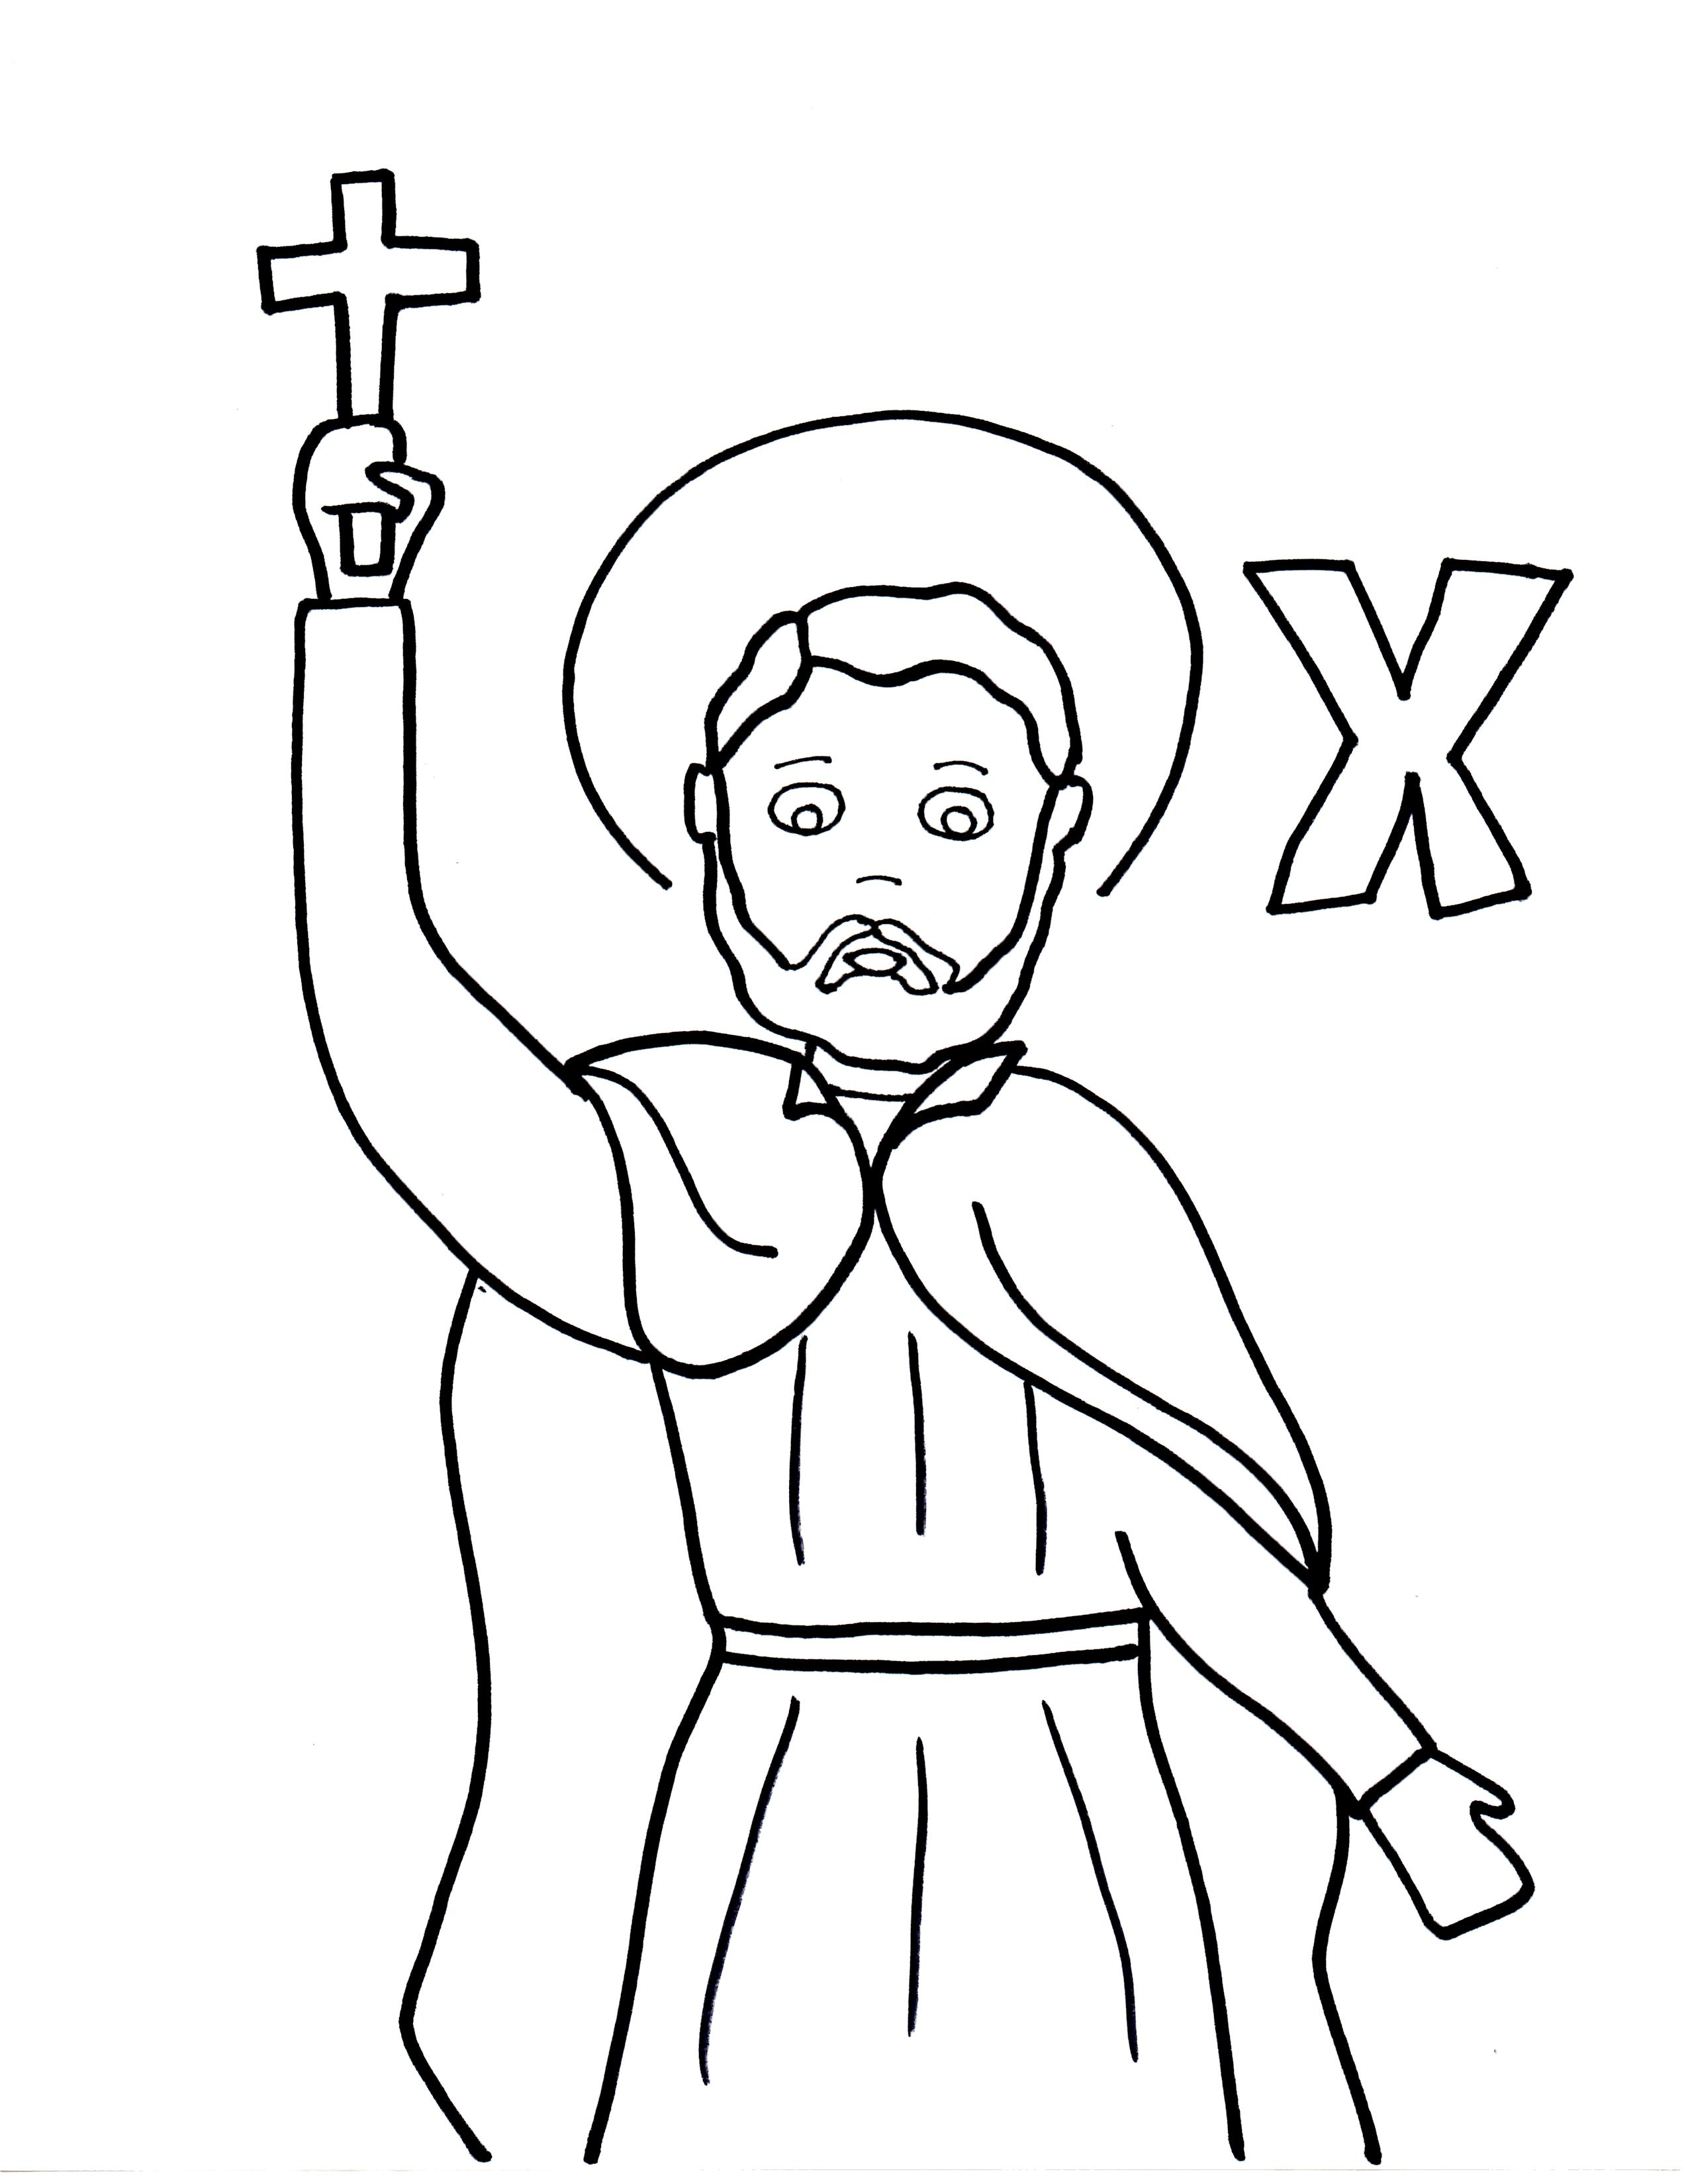 X Is For St Francis Xavier